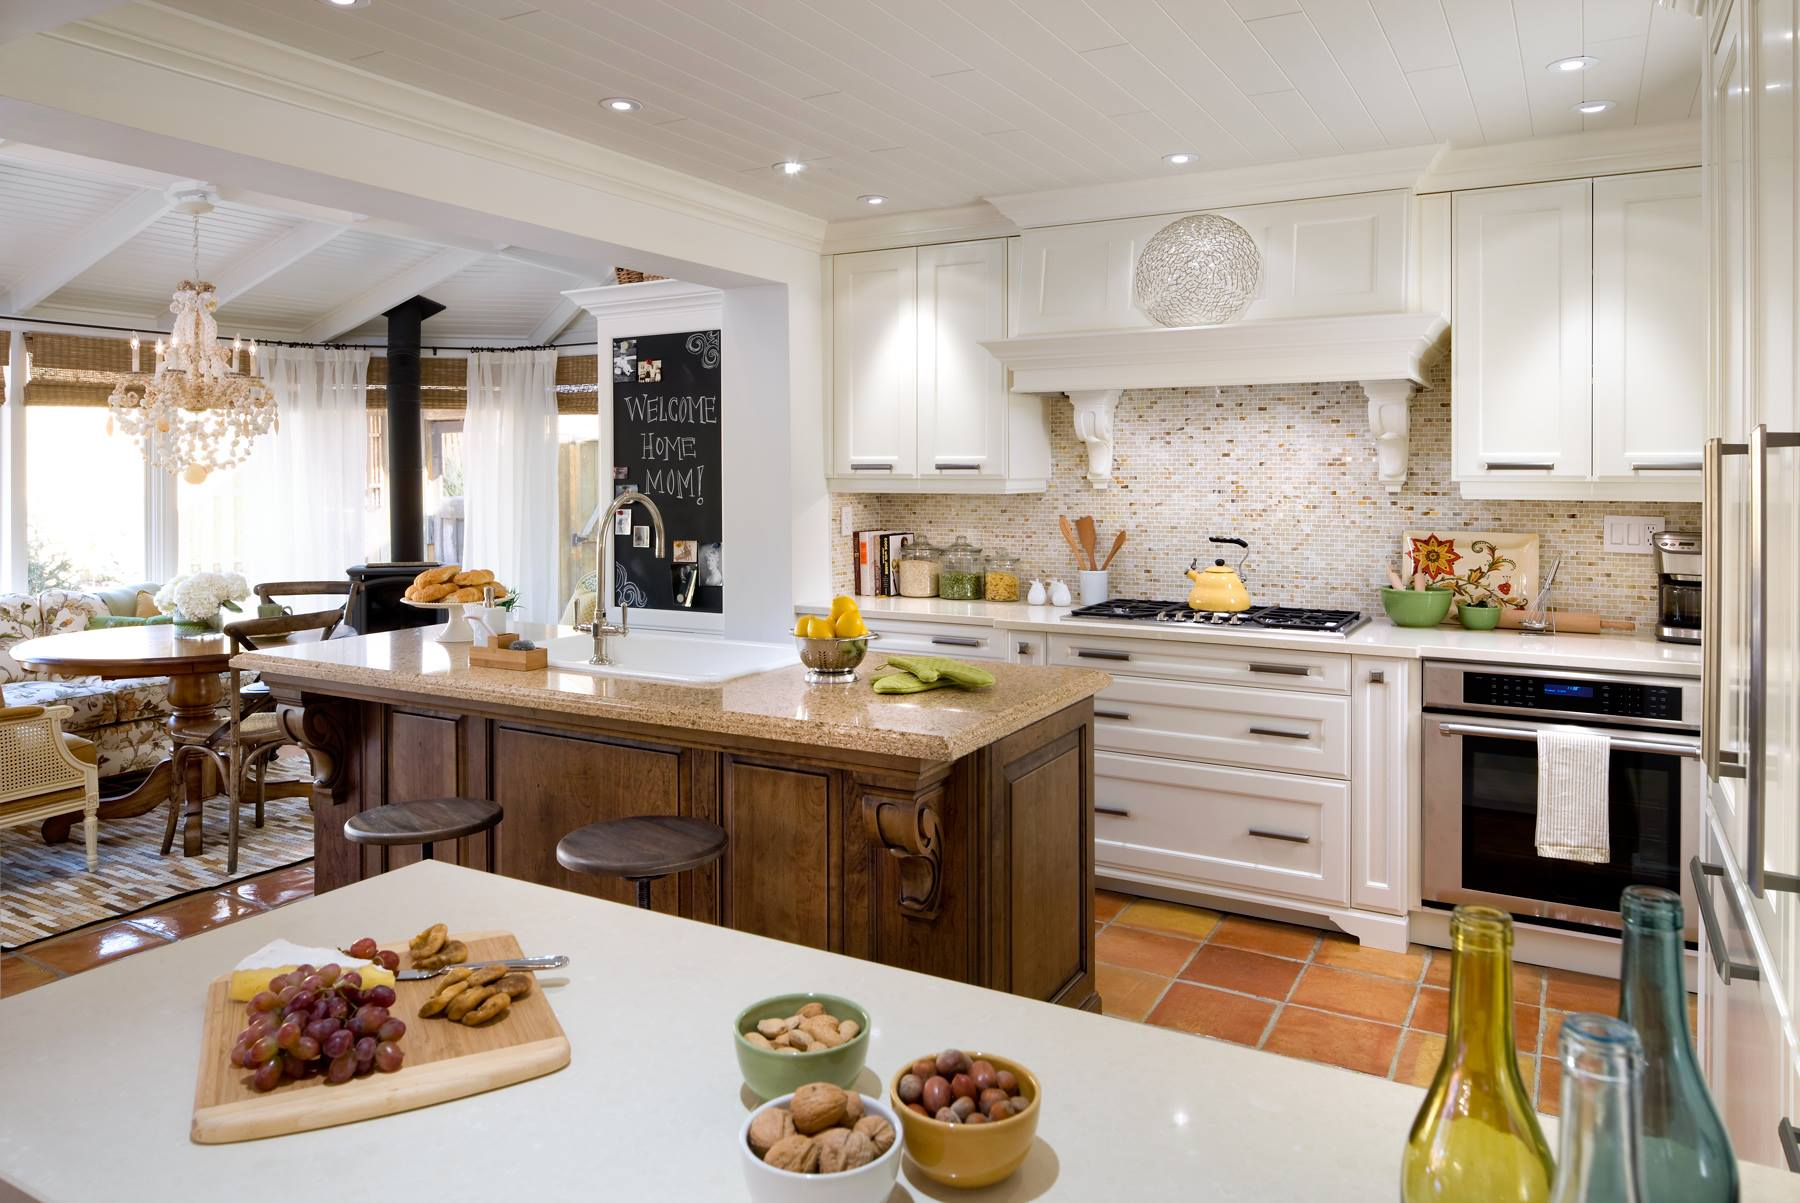 Dining delightfully in Candice olson favorite kitchens ...